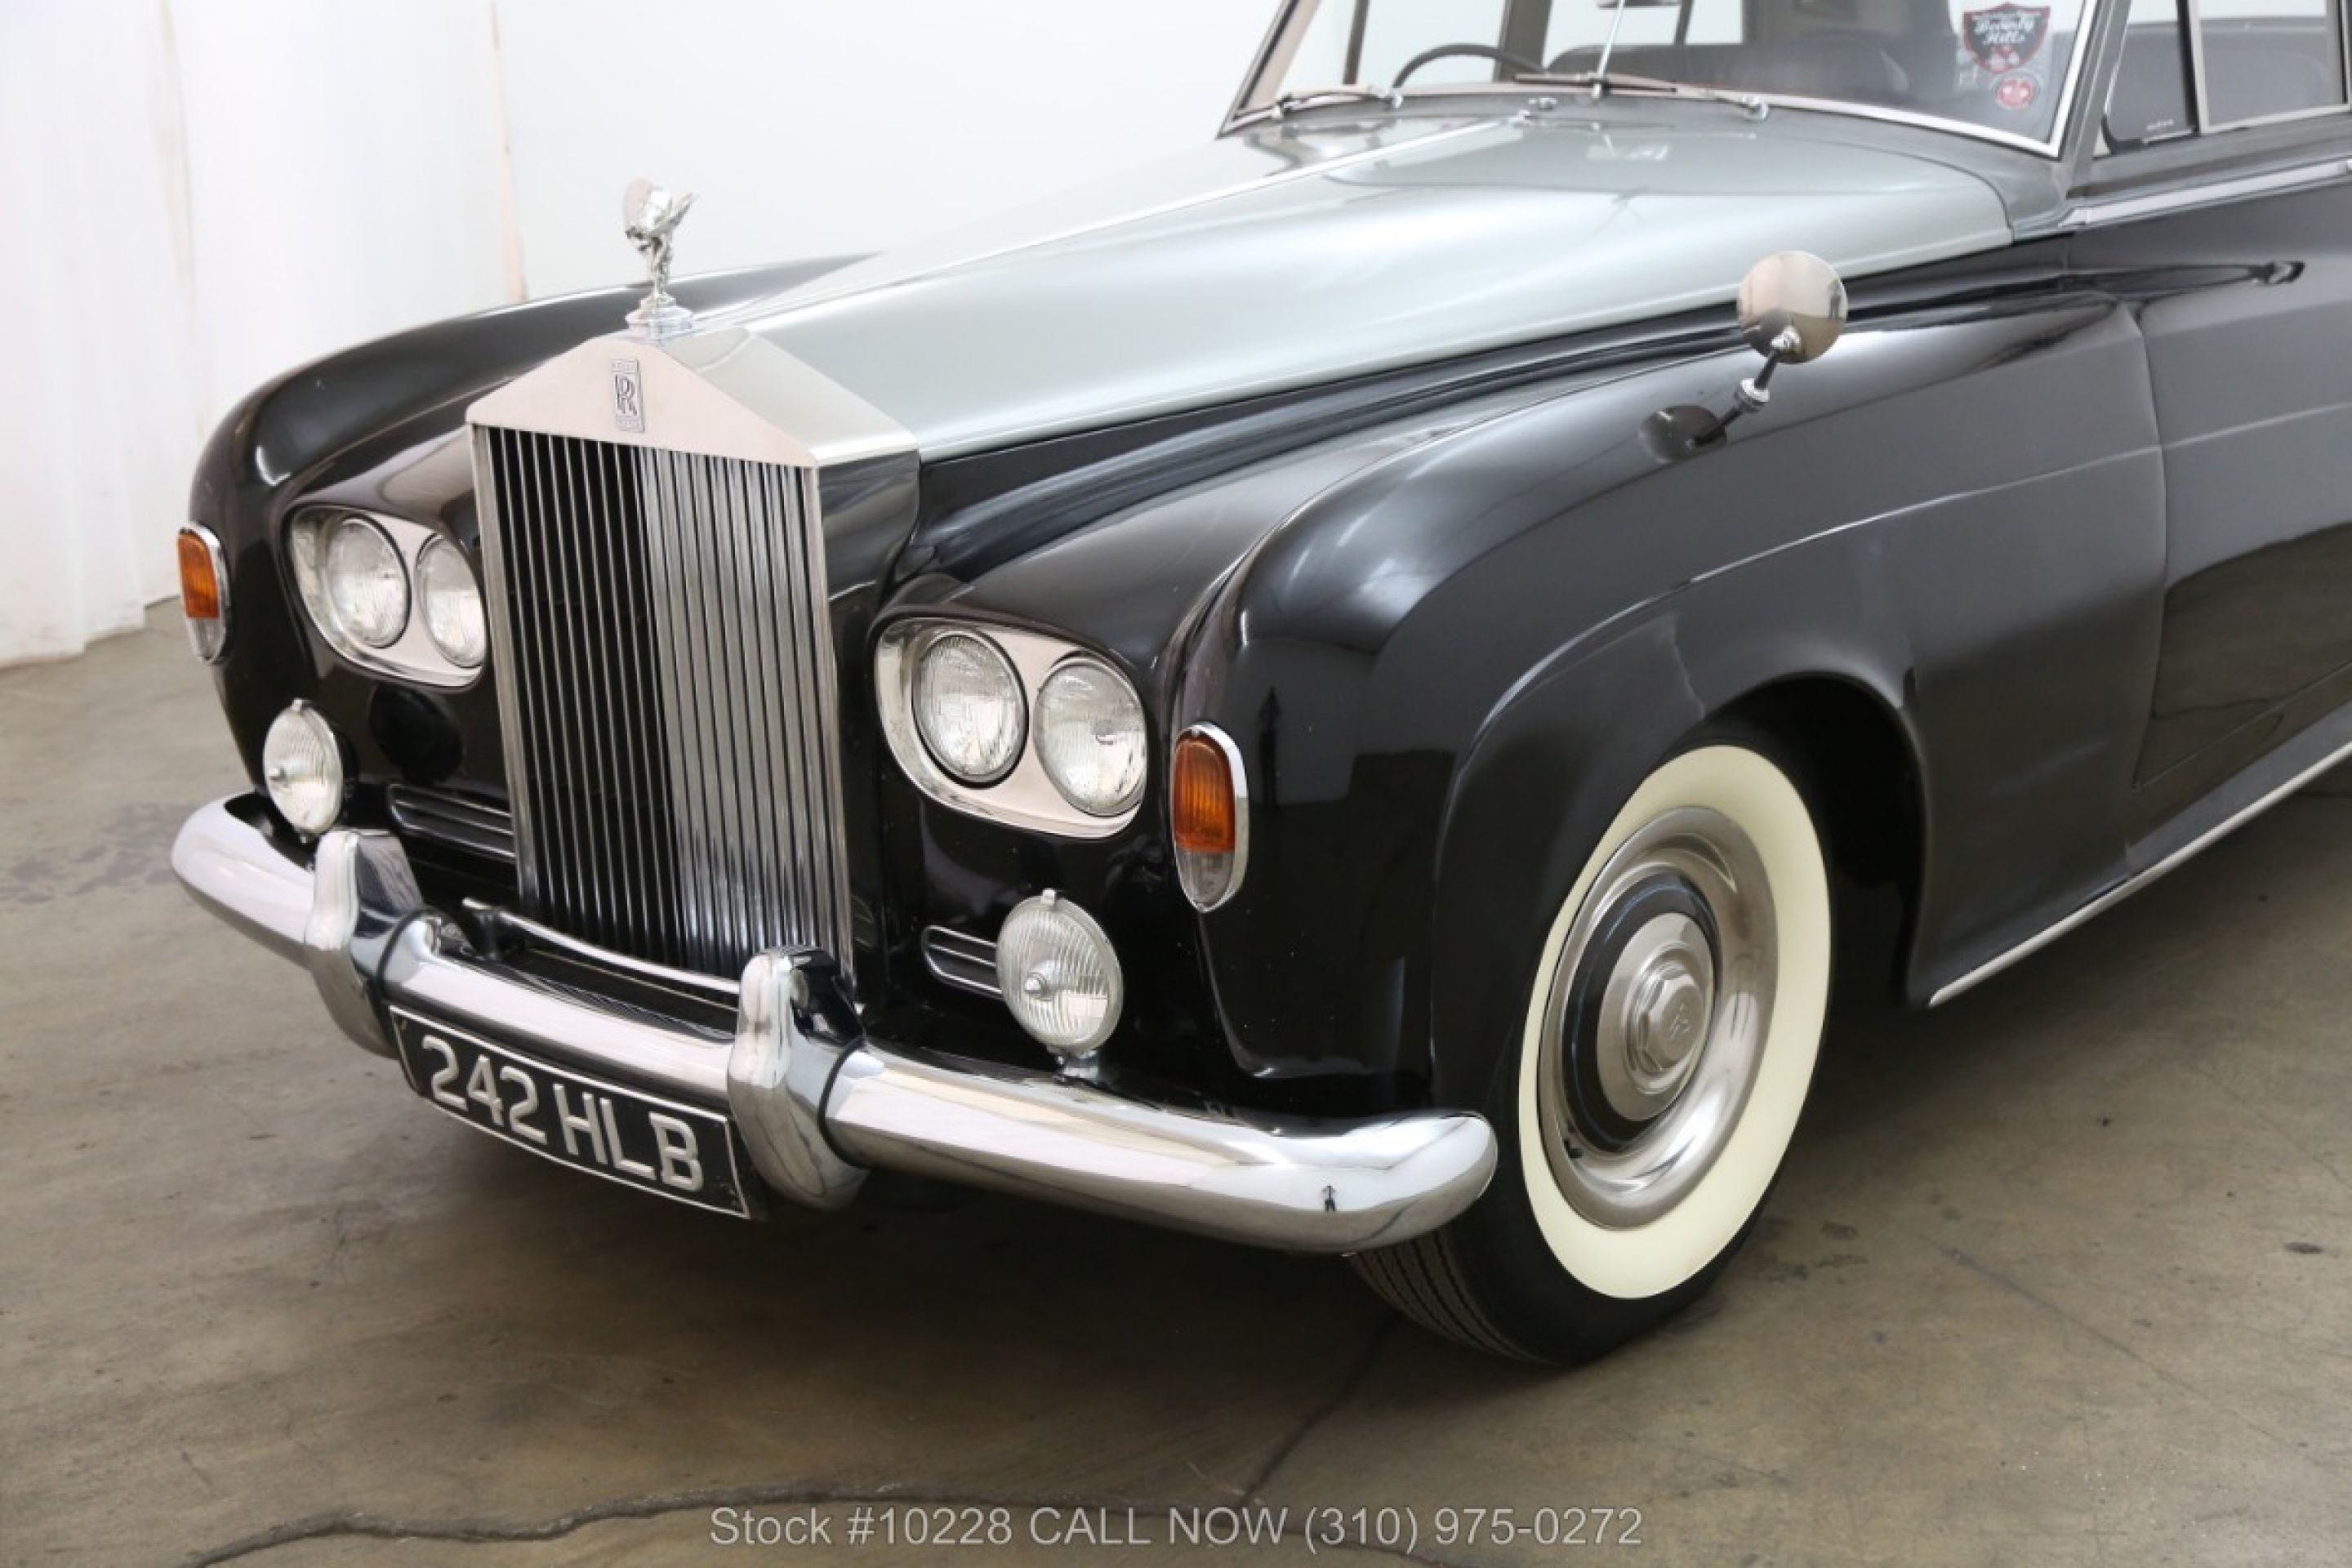 1964 Rolls Royce Silver Cloud III Right Hand Drive